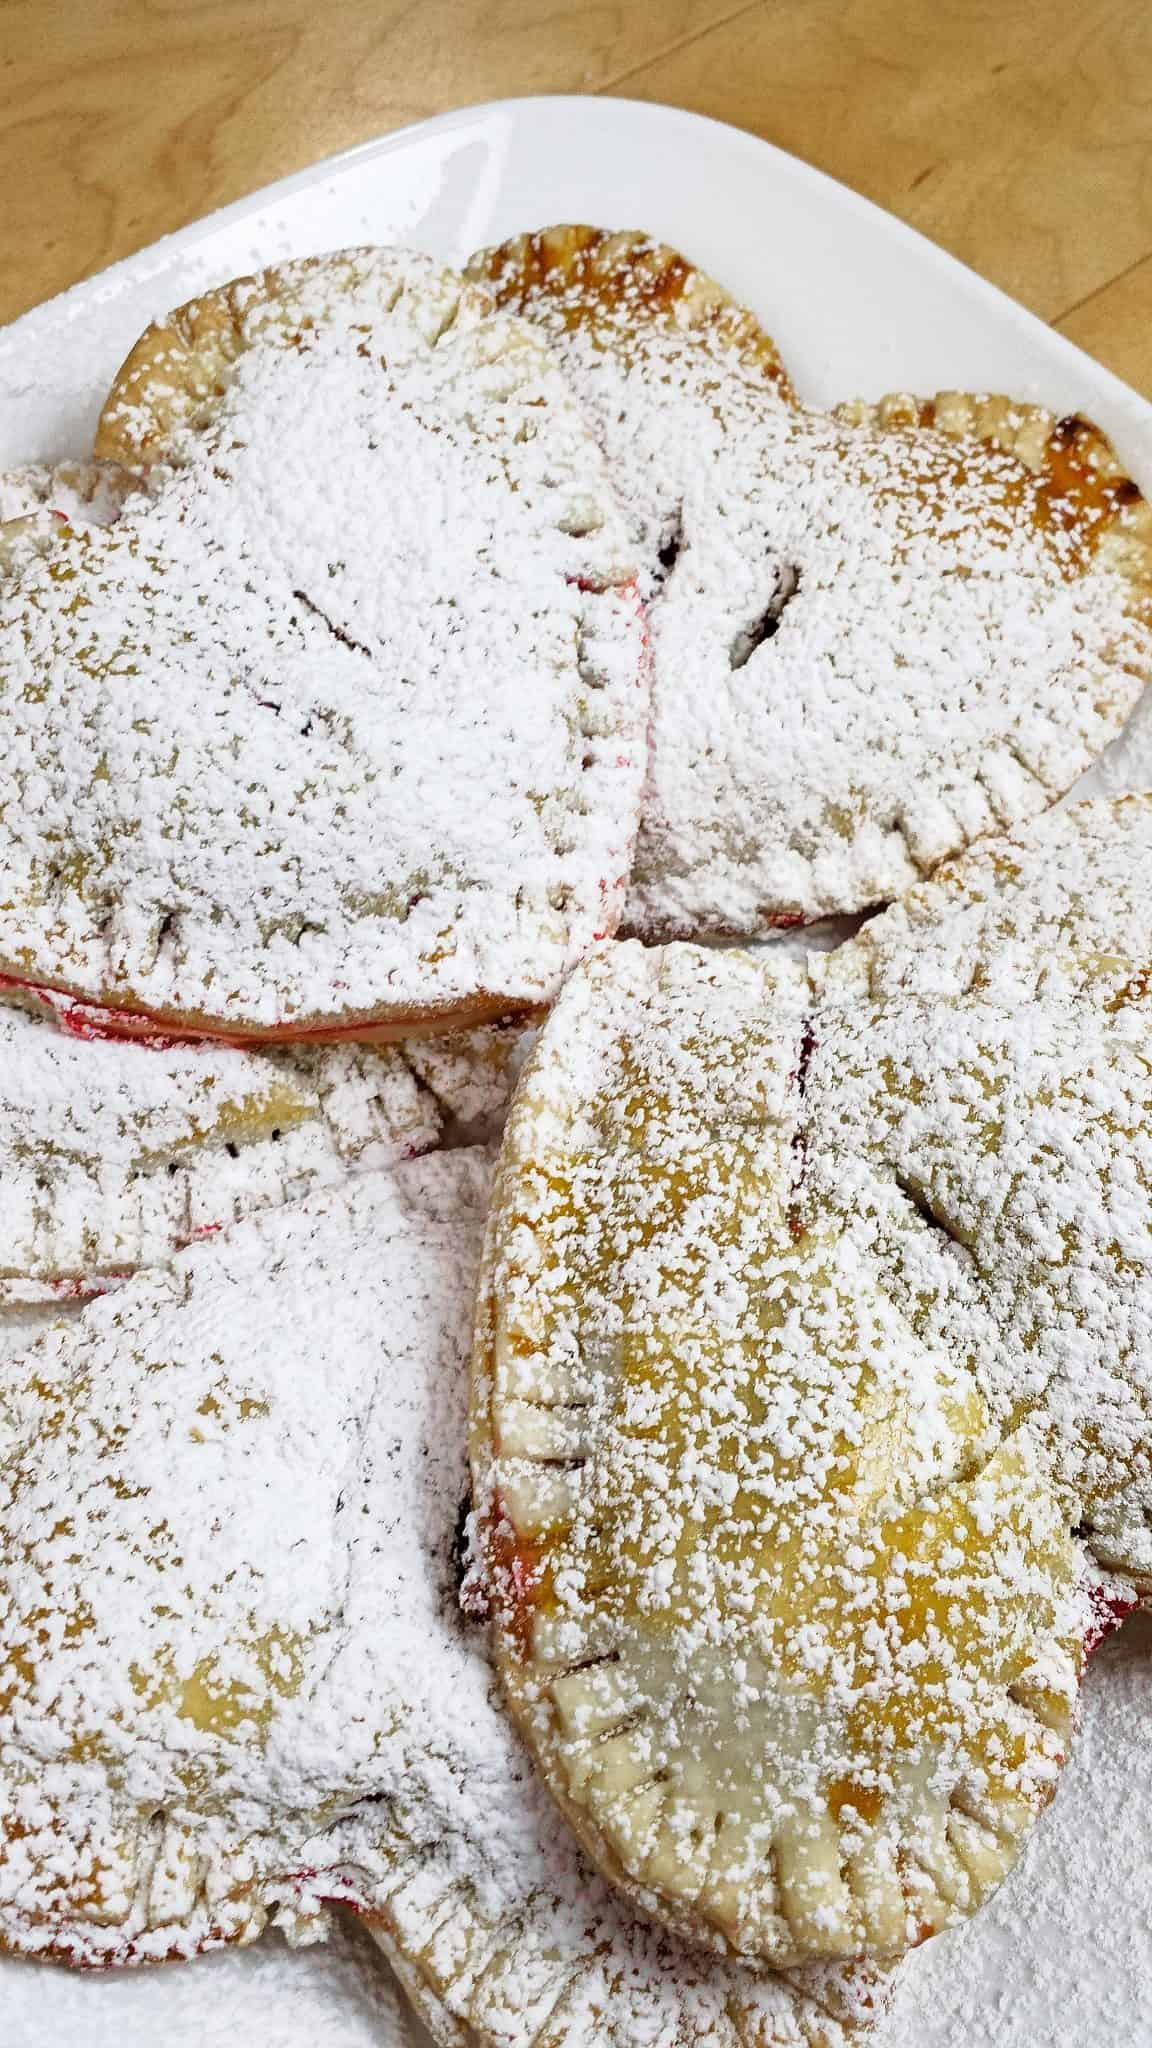 A plate of cherry hand pies that are heart shaped dusted with confectioner's sugar.